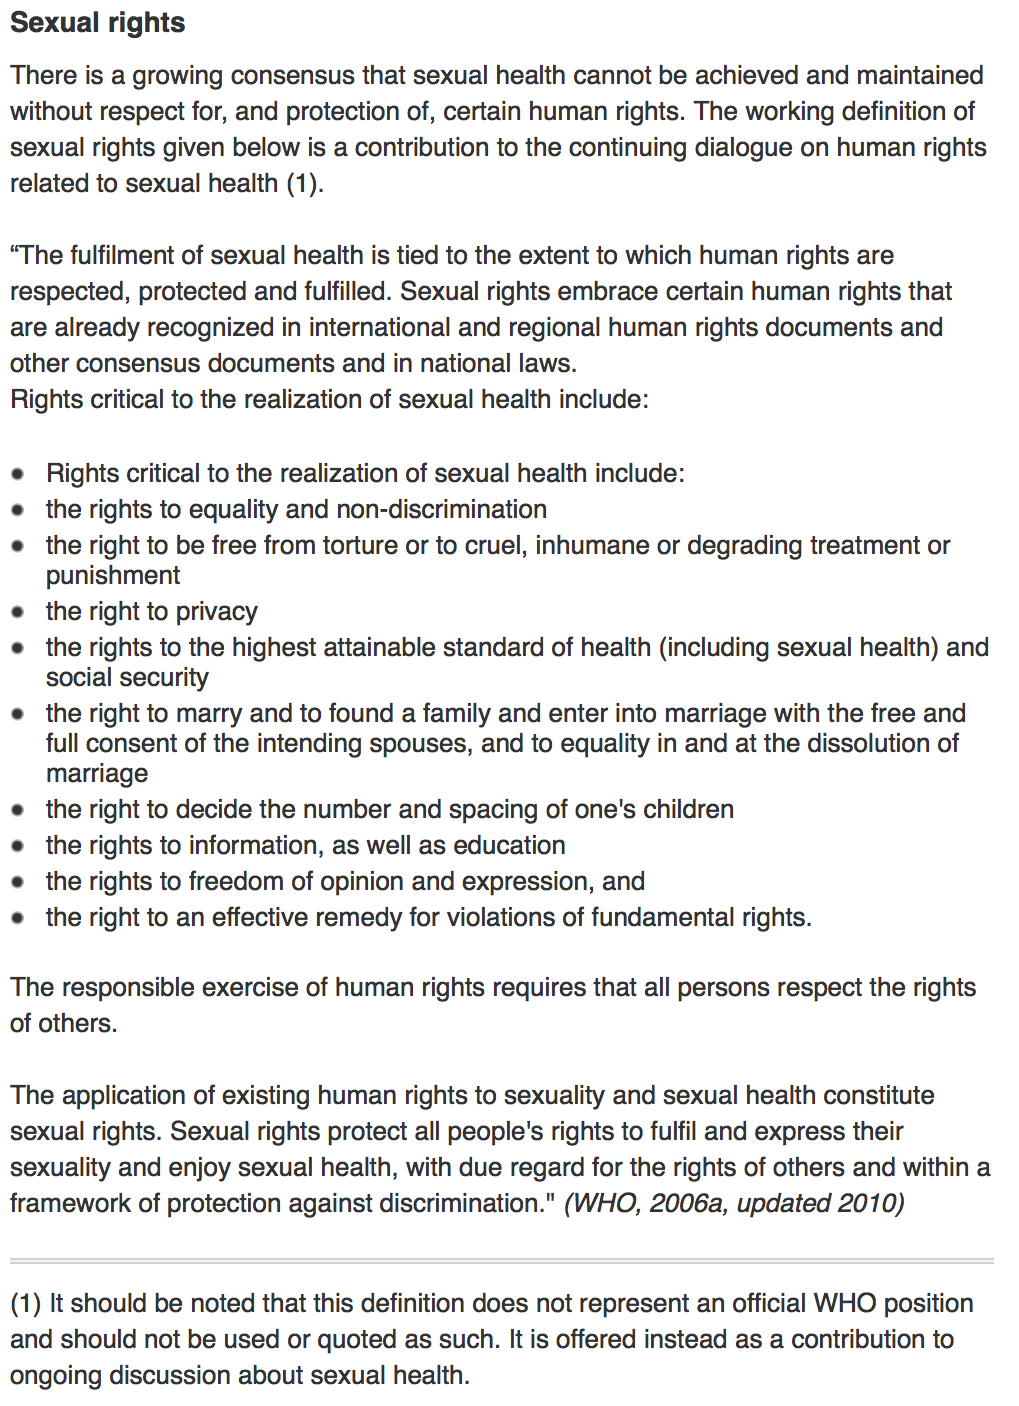 WHO Sexual Rights